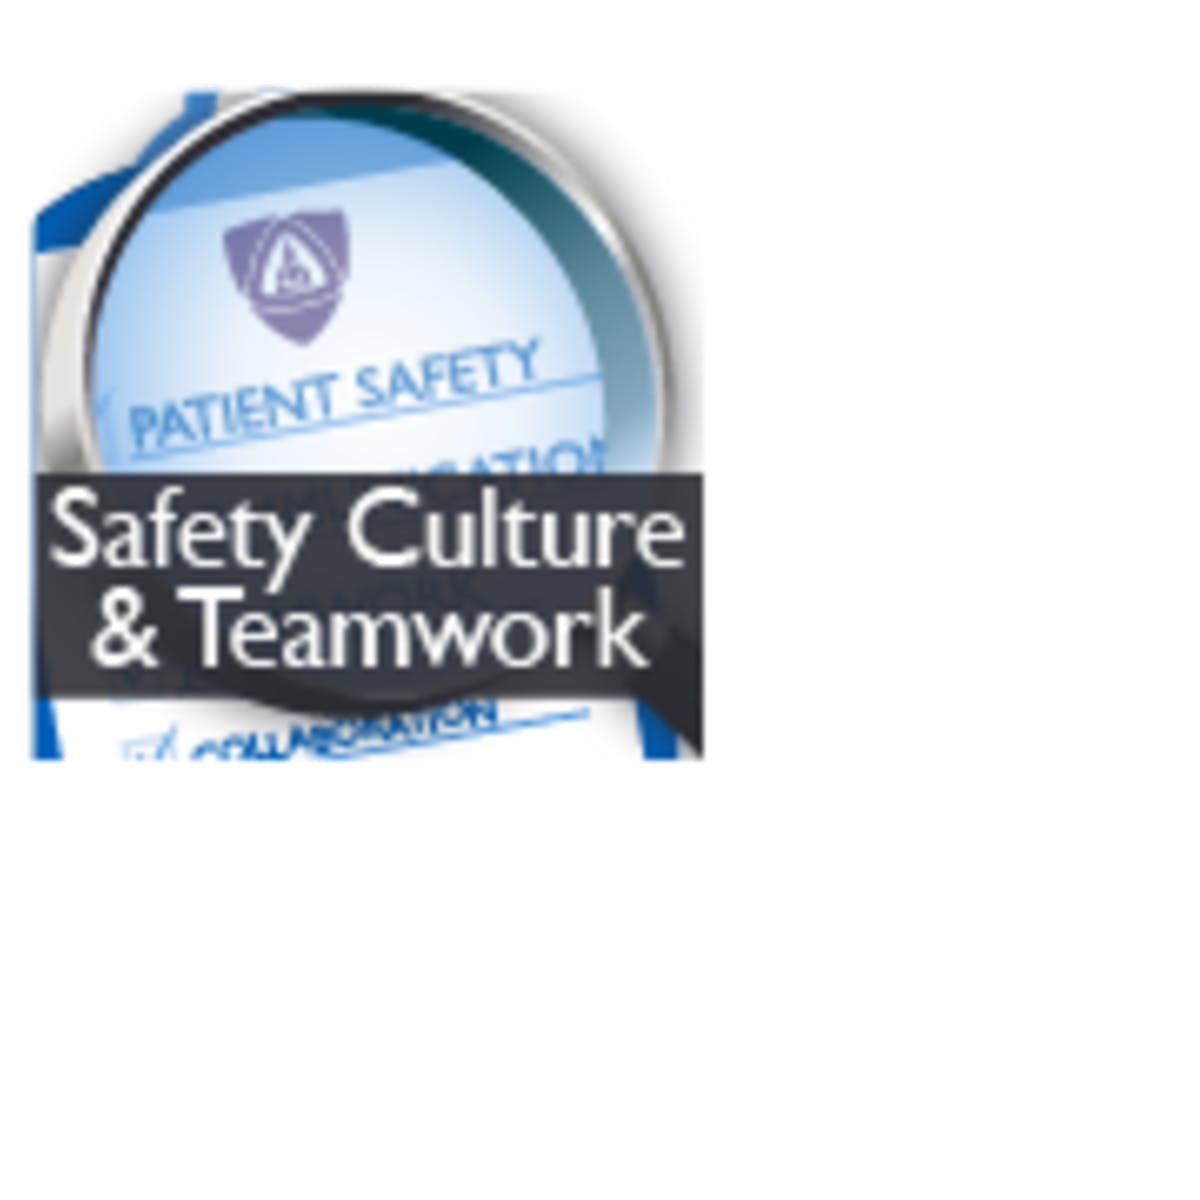 Setting the Stage for Success: An Eye on Safety Culture and Teamwork (Patient Safety II)